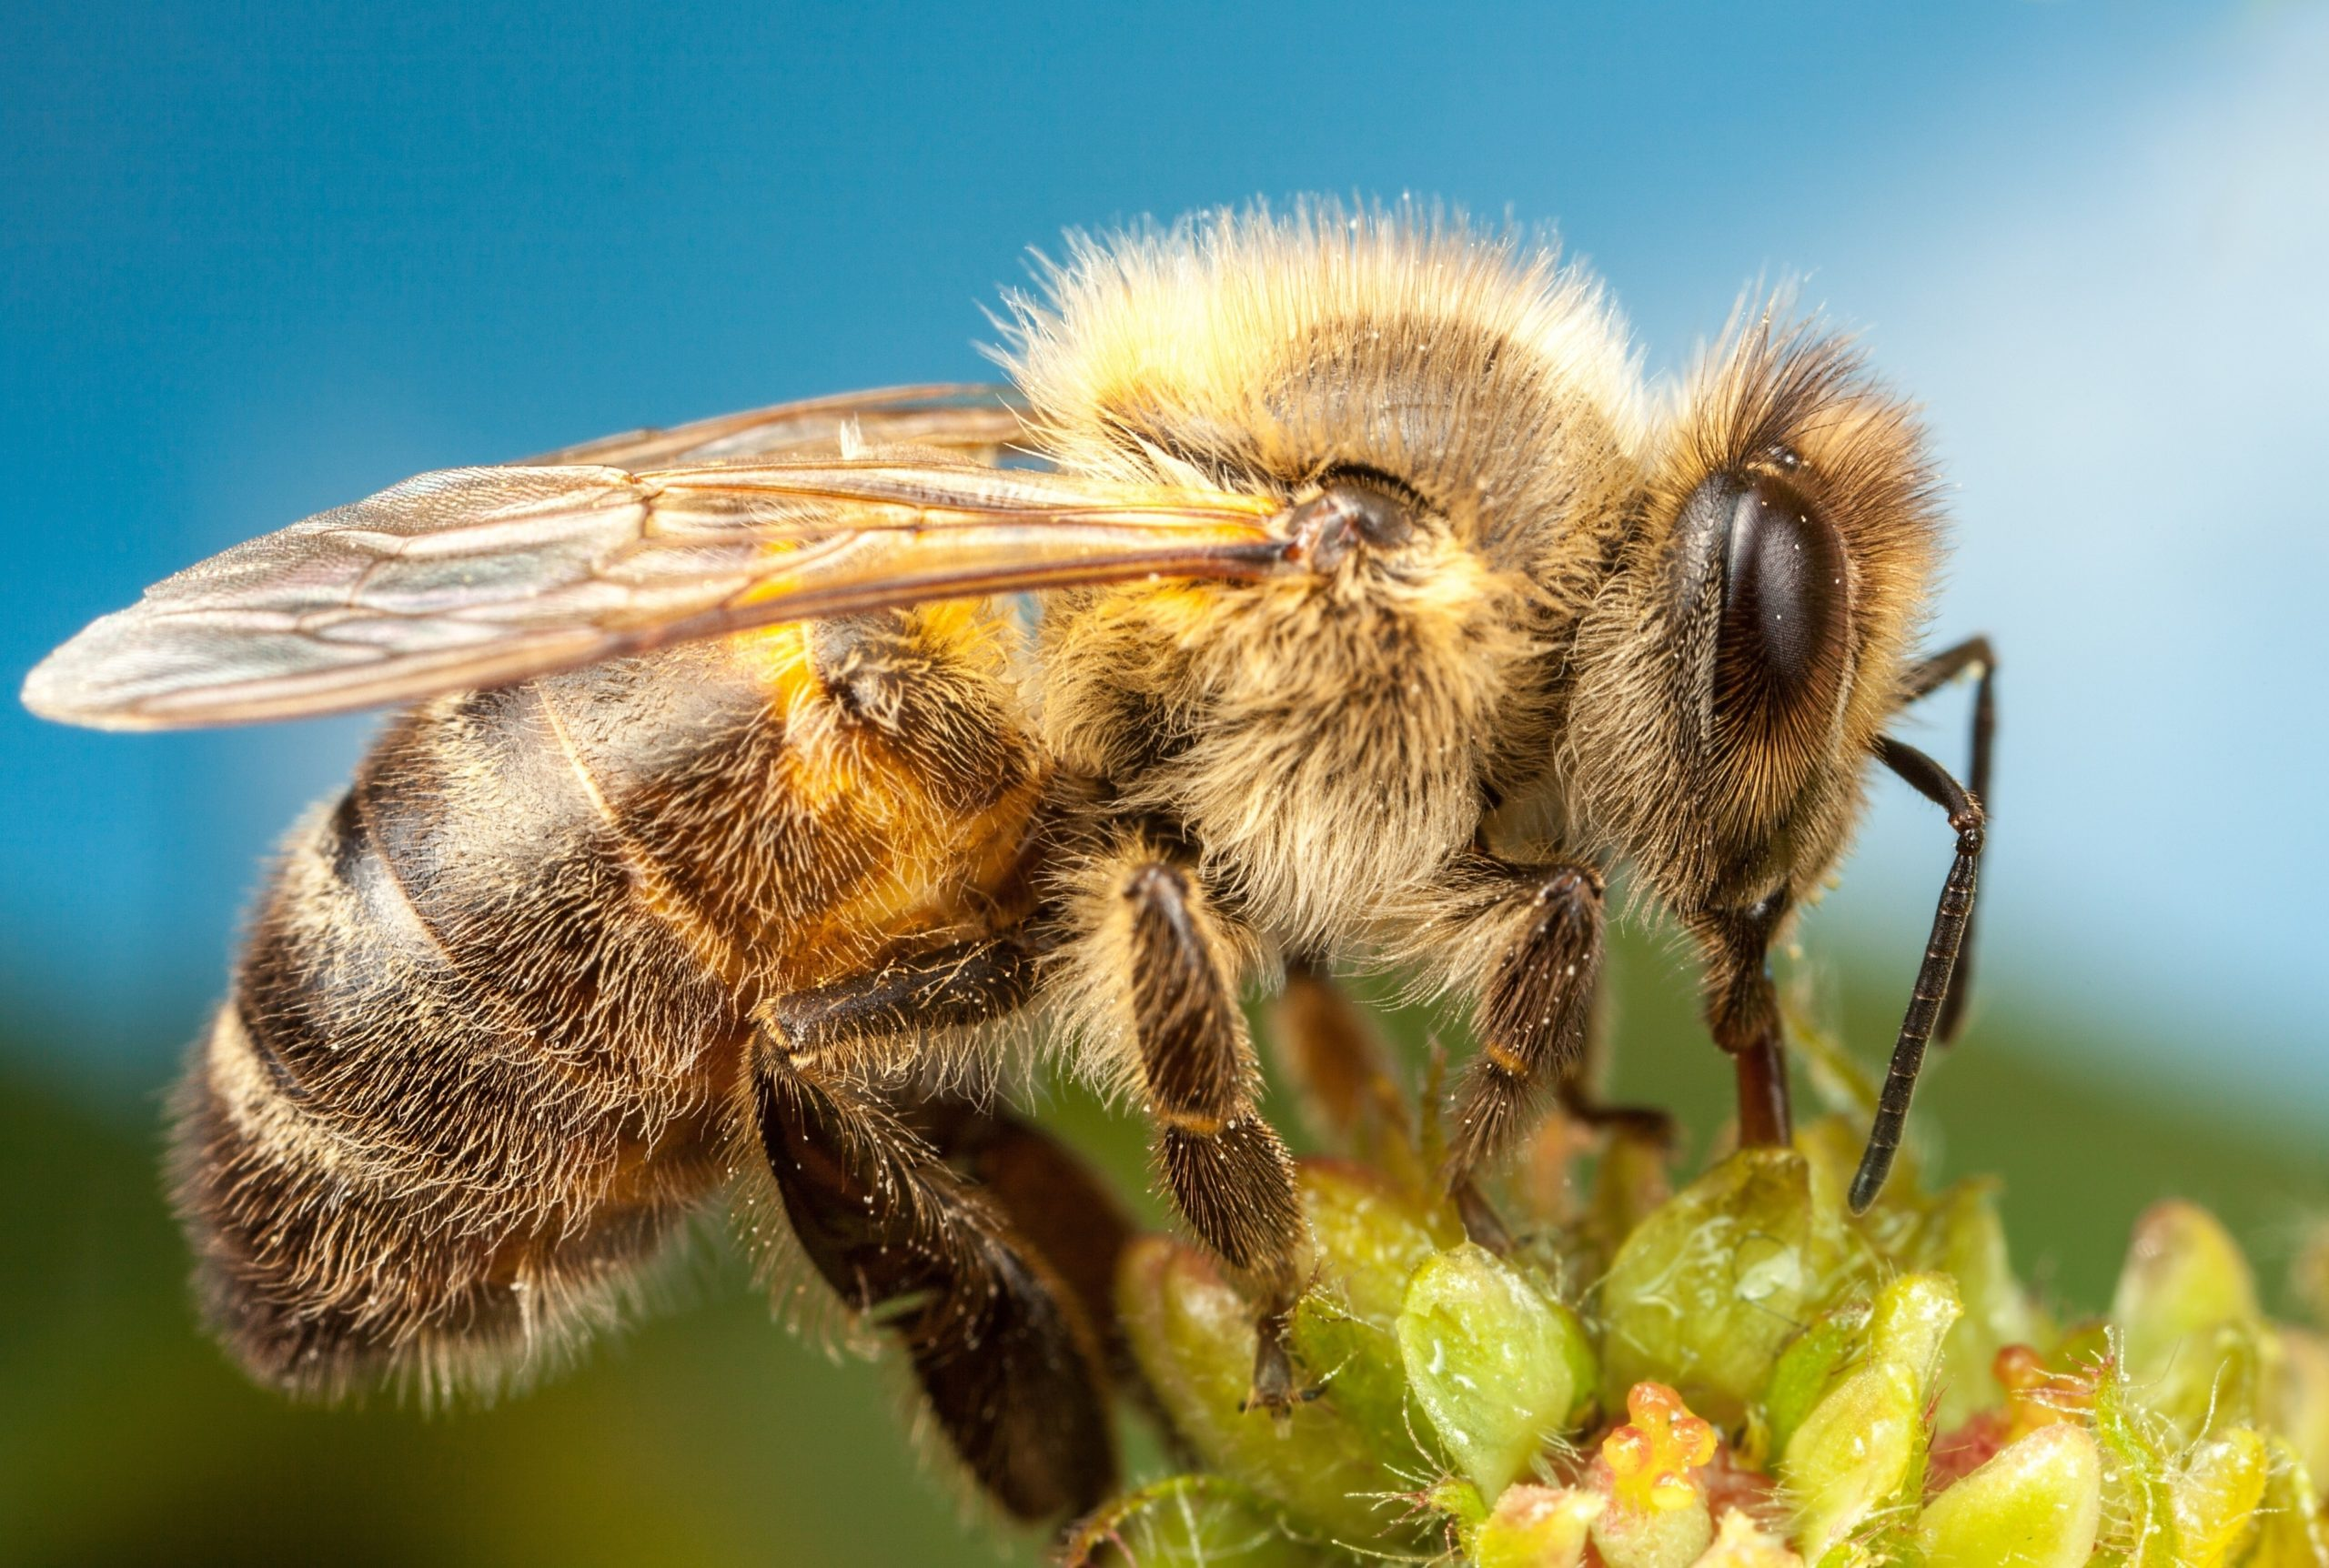 https://naked-science.ru/wp-content/uploads/2019/12/2018Animals___Insects_Bee_on_flower_on_blue_background_close-up_123487_-scaled.jpg